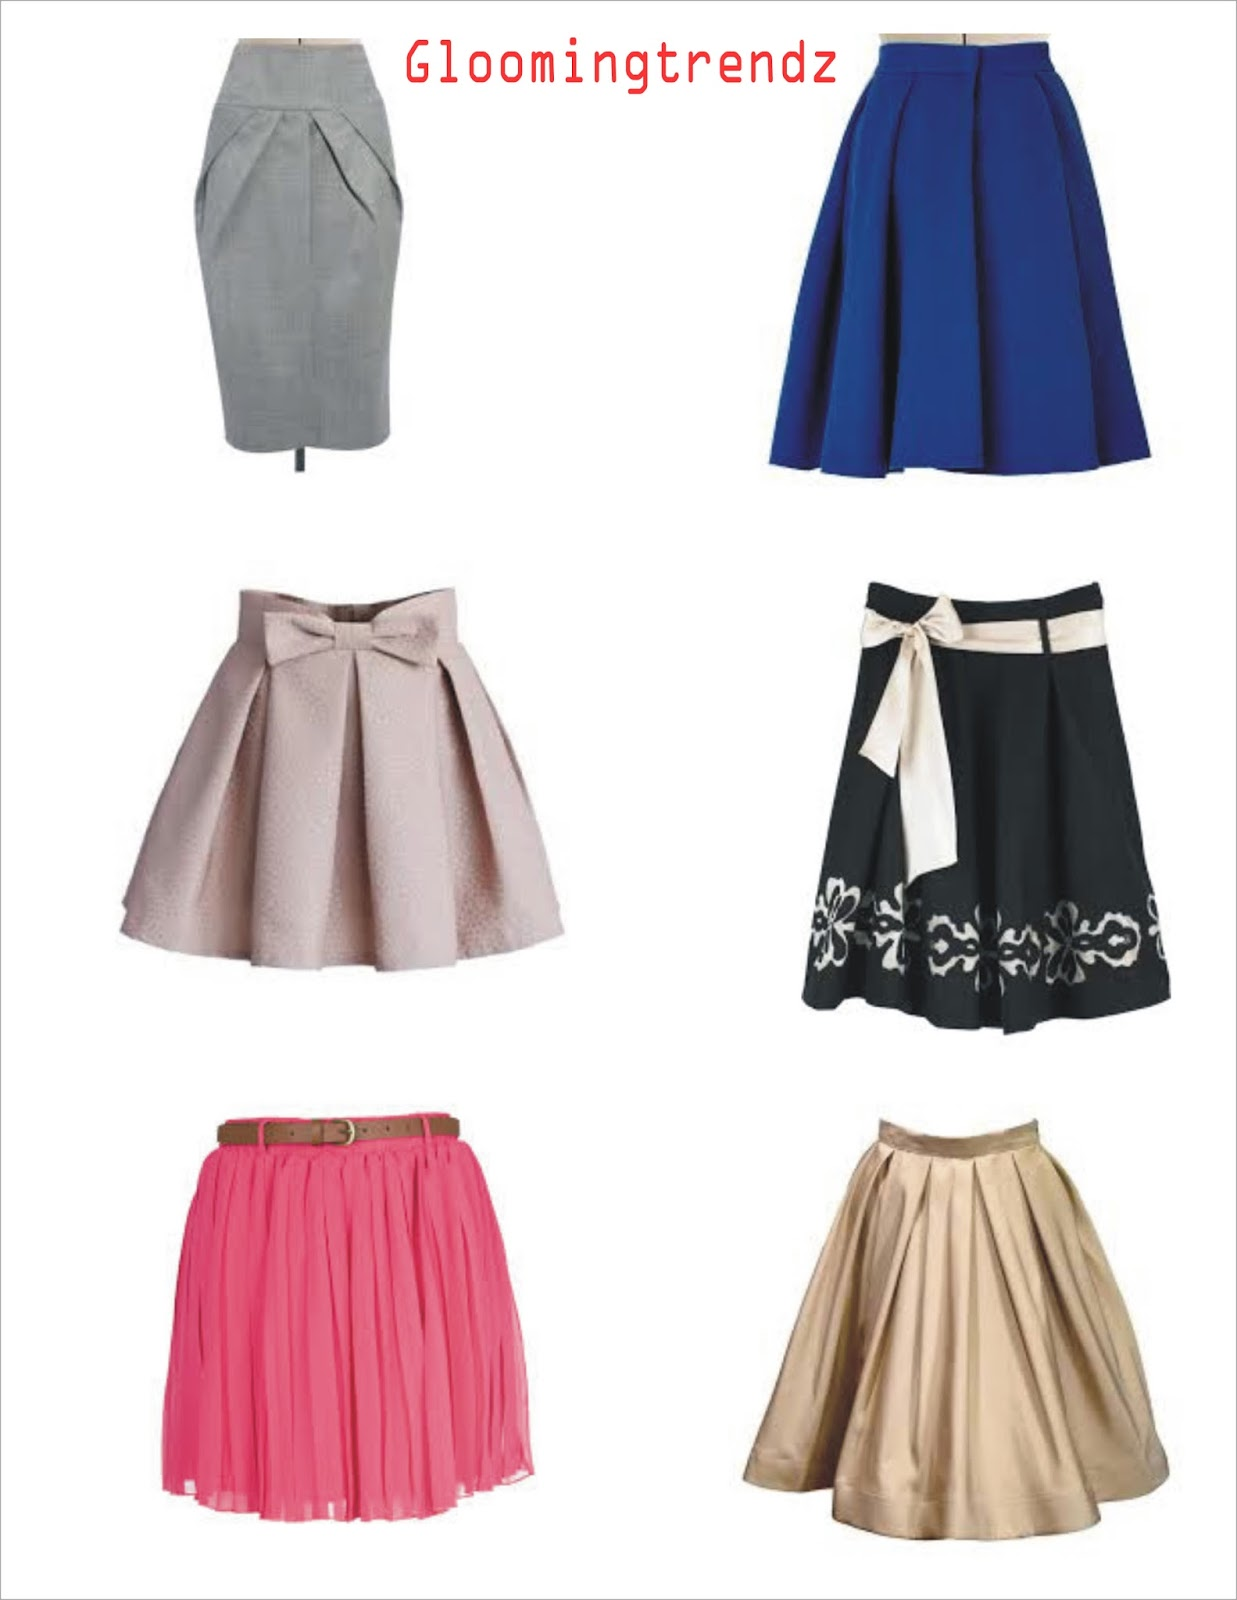 GLOOMING TRENDZ: HOW TO STYLE MIDI SKIRT